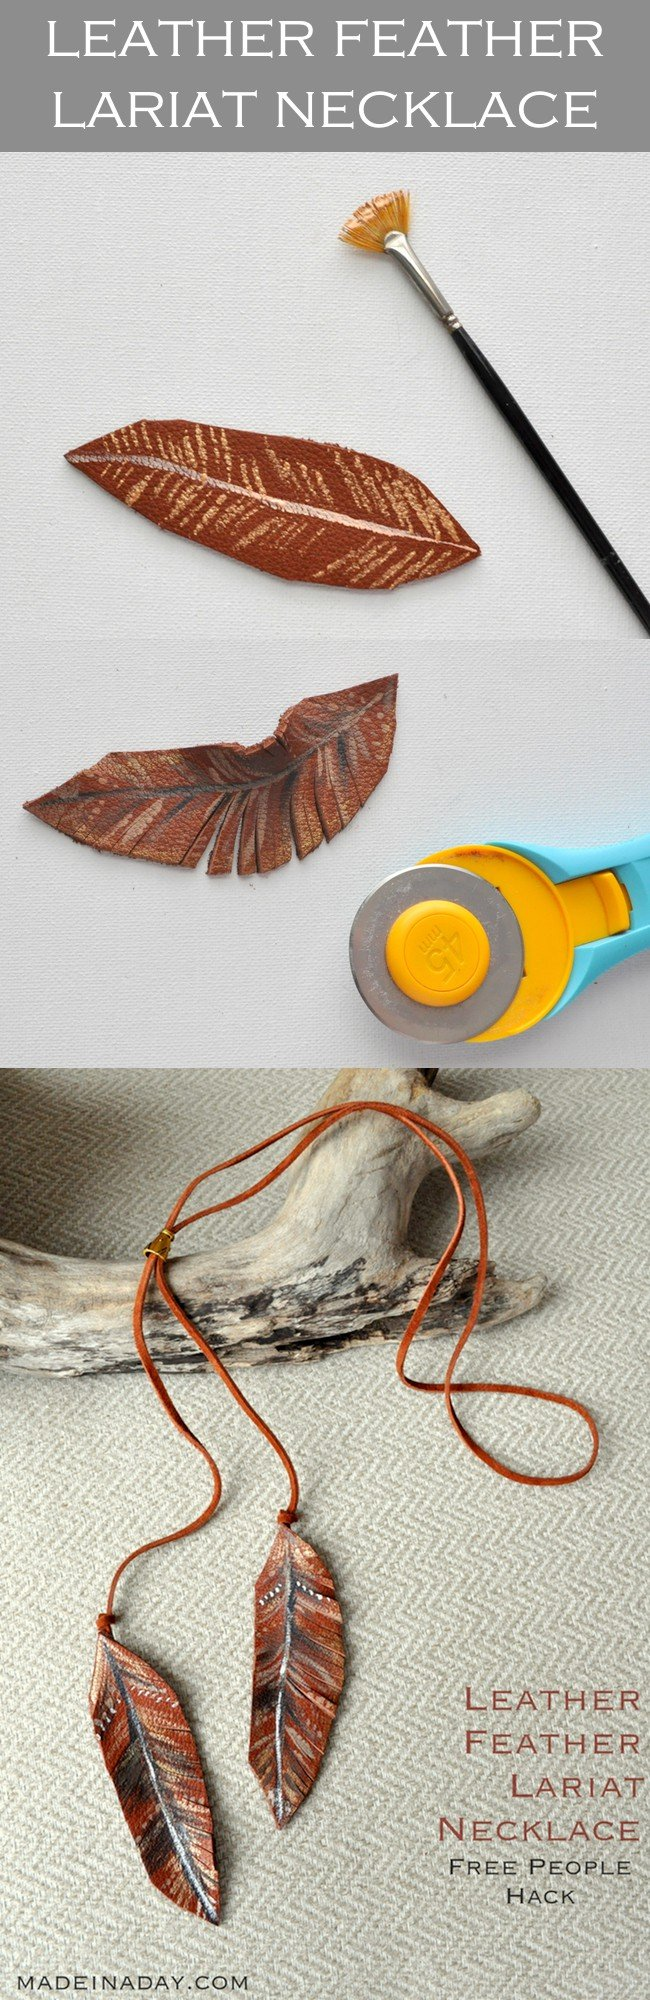 DIY Leather Feather Lariat Necklace + Free Printable Feather Guide, learn to make a simple leather lariat painted necklace, feather necklace #feather #necklace #lariat #leather #jewelry